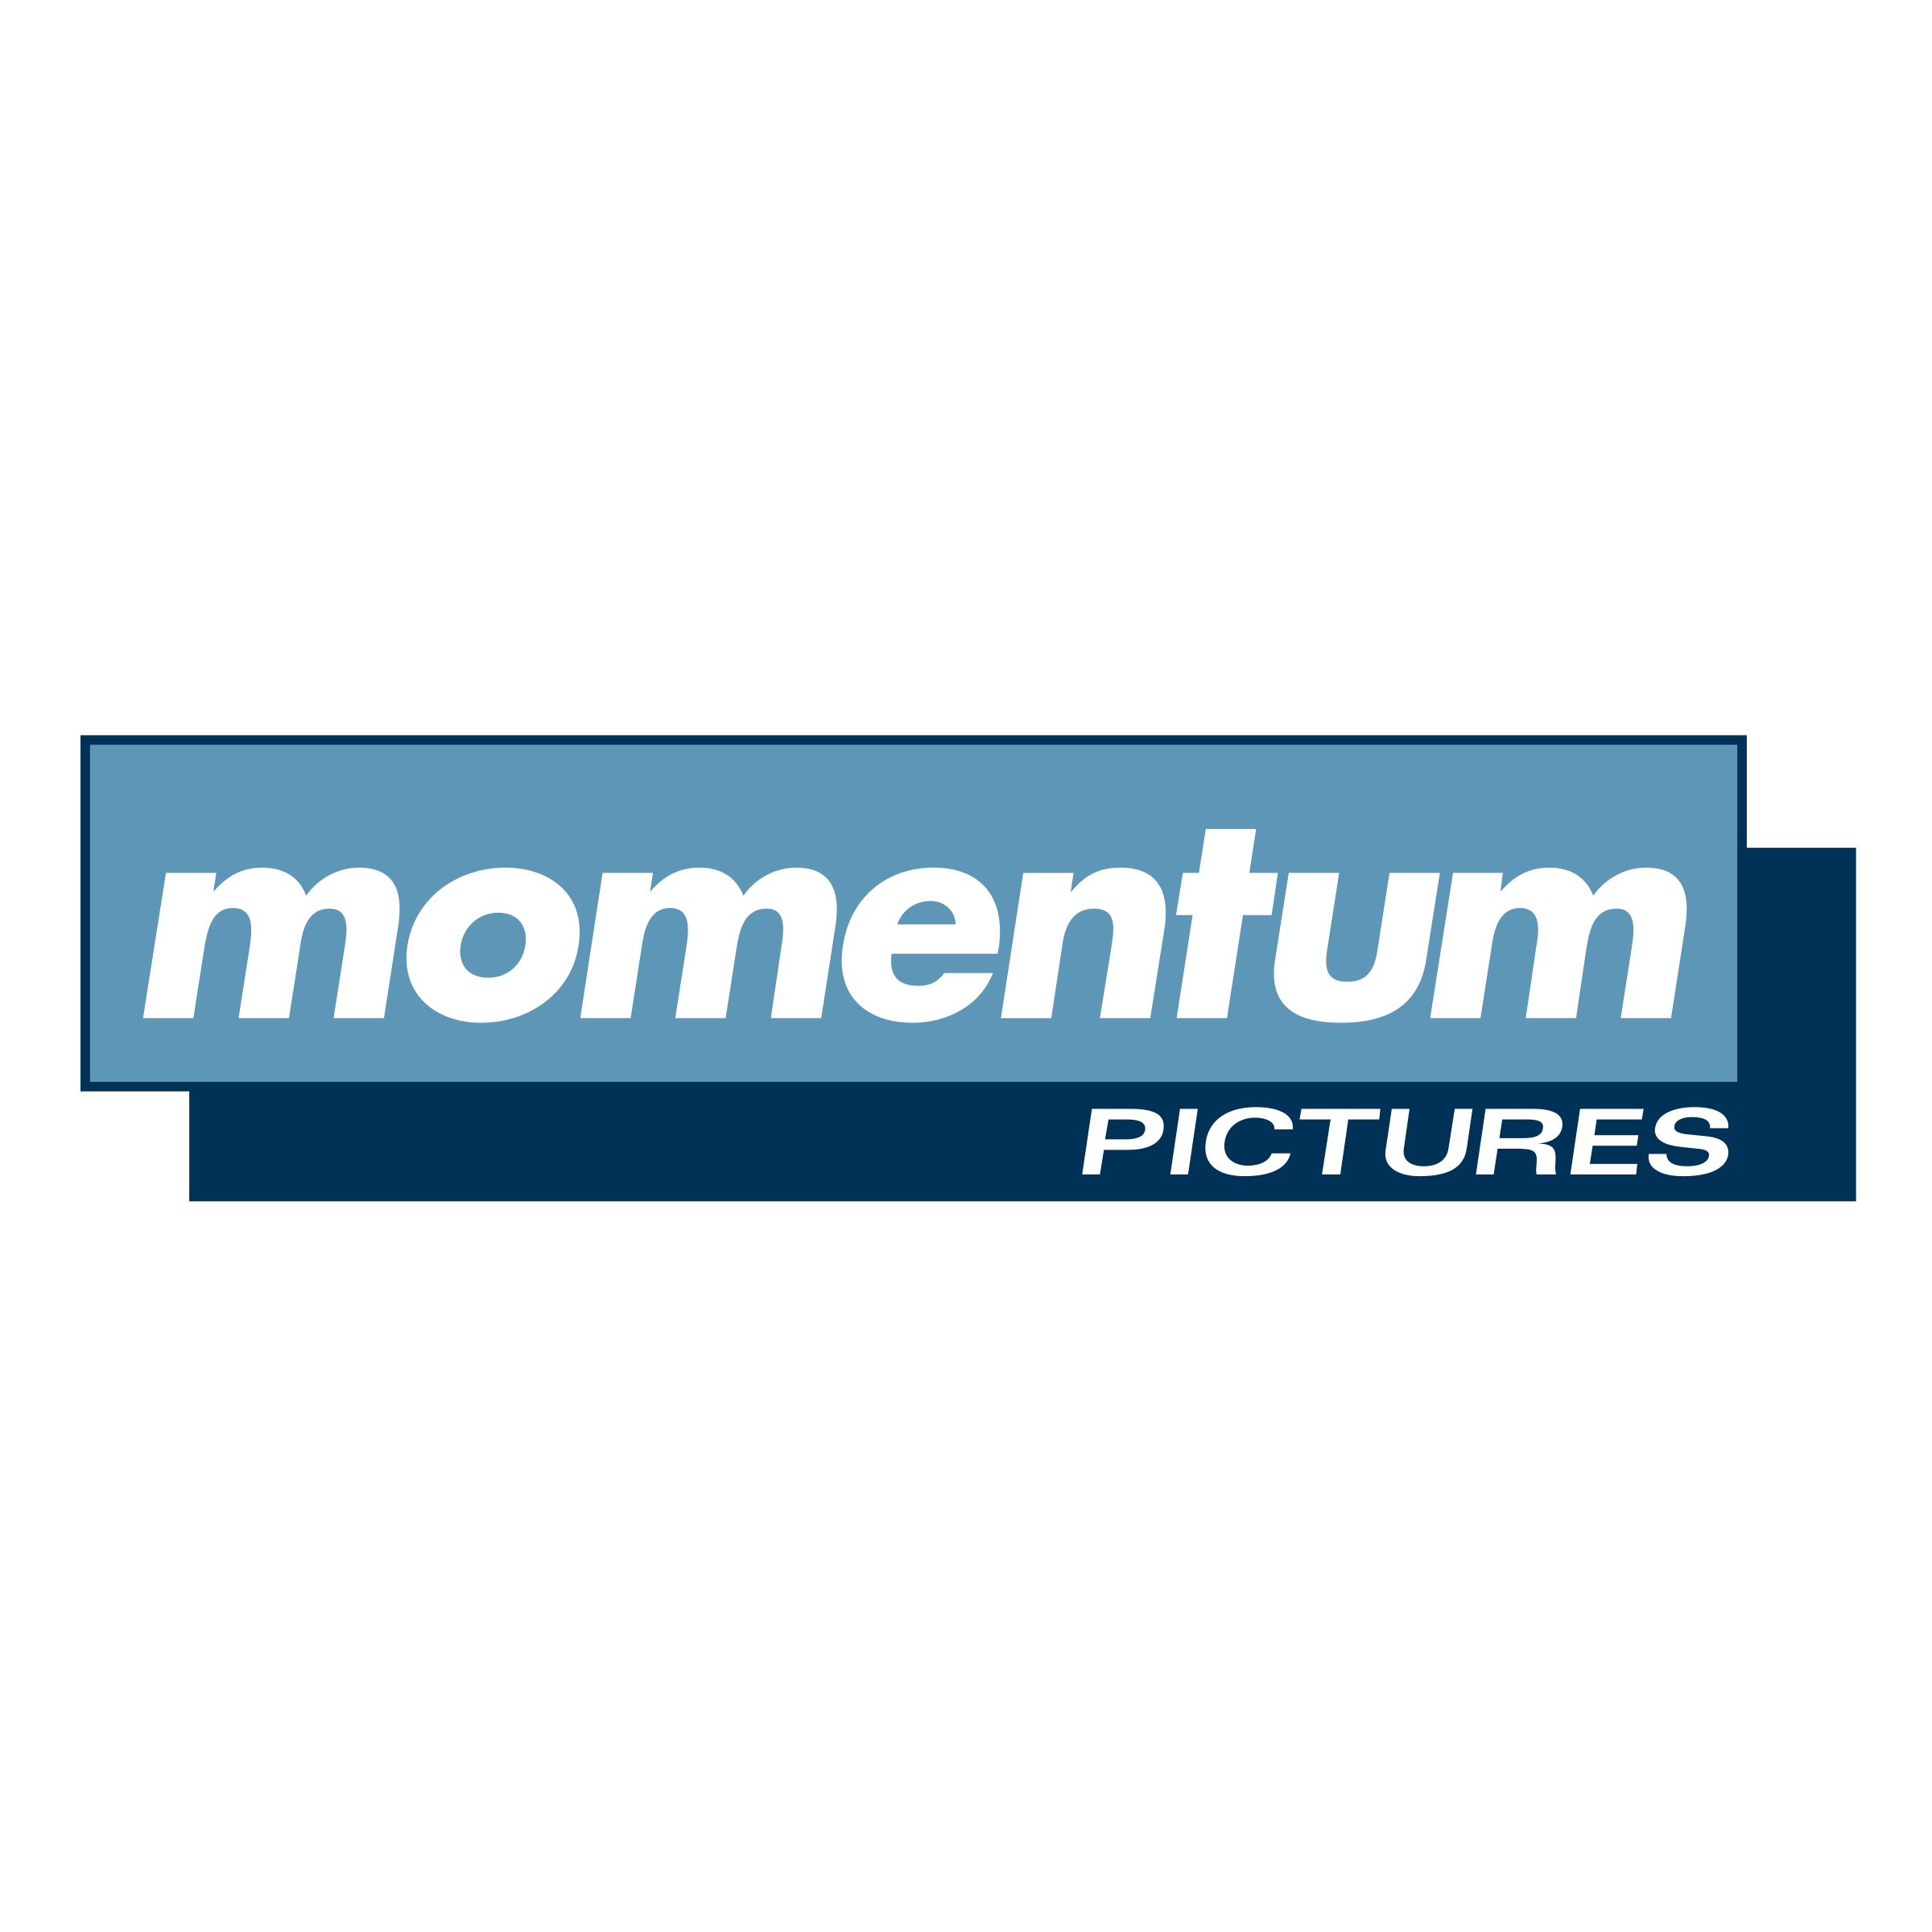 Momentum Pictures Logo PNG Transparent & SVG Vector.